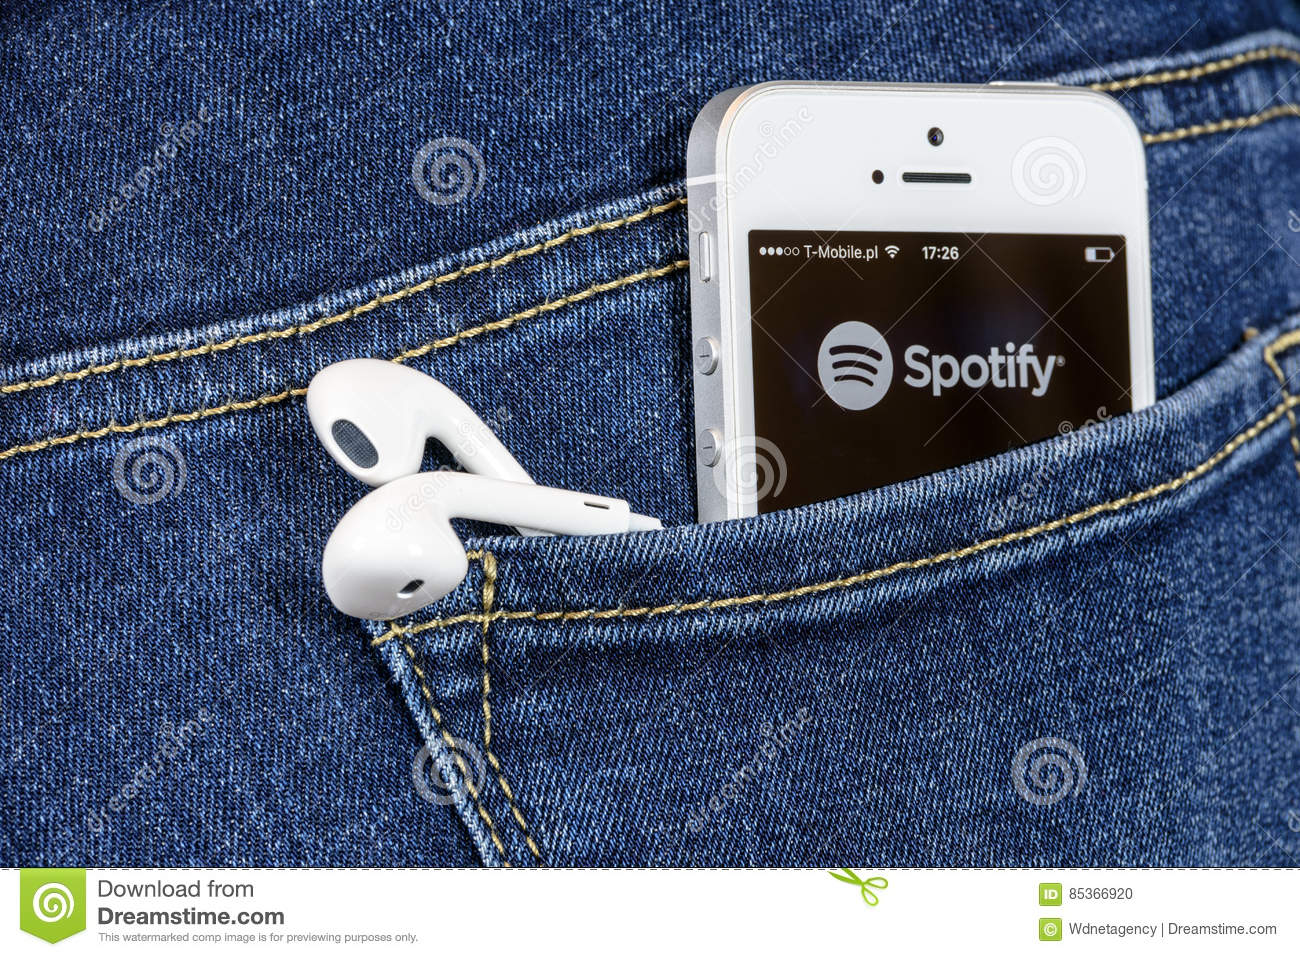 how to download spotify videos